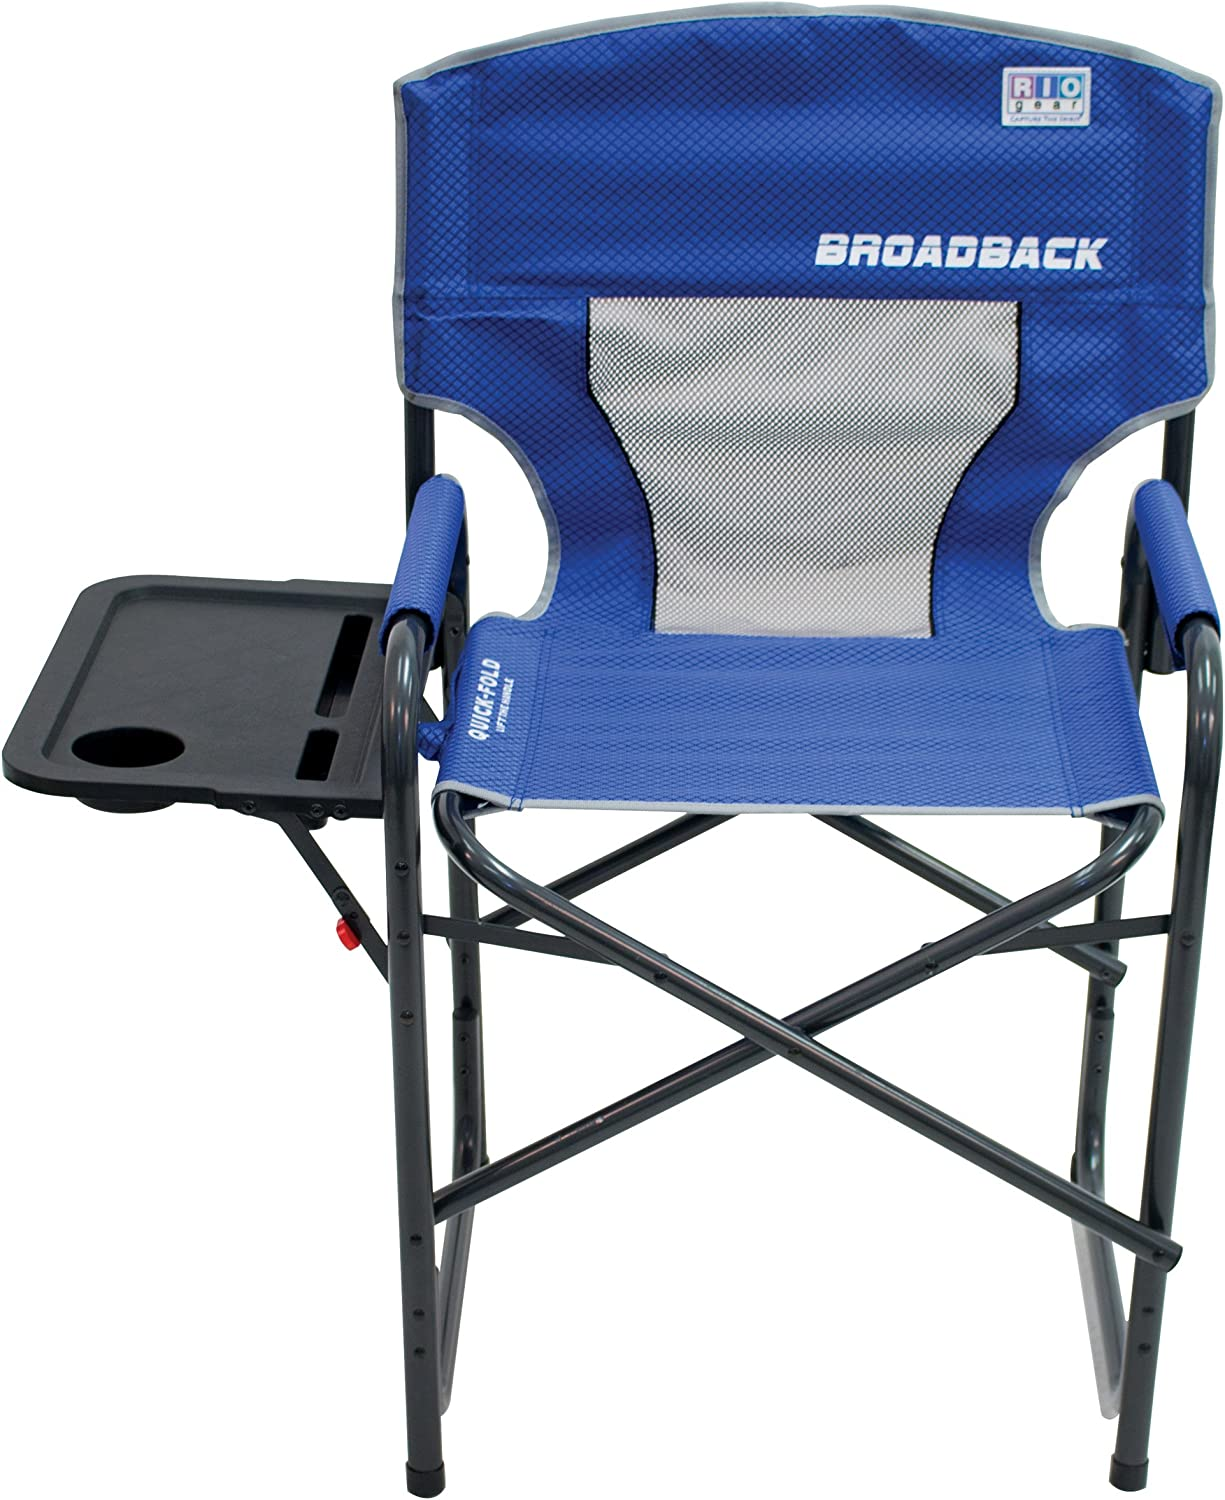 RIO Gear Outdoor Director's Folding Chair with Side Table for Camping